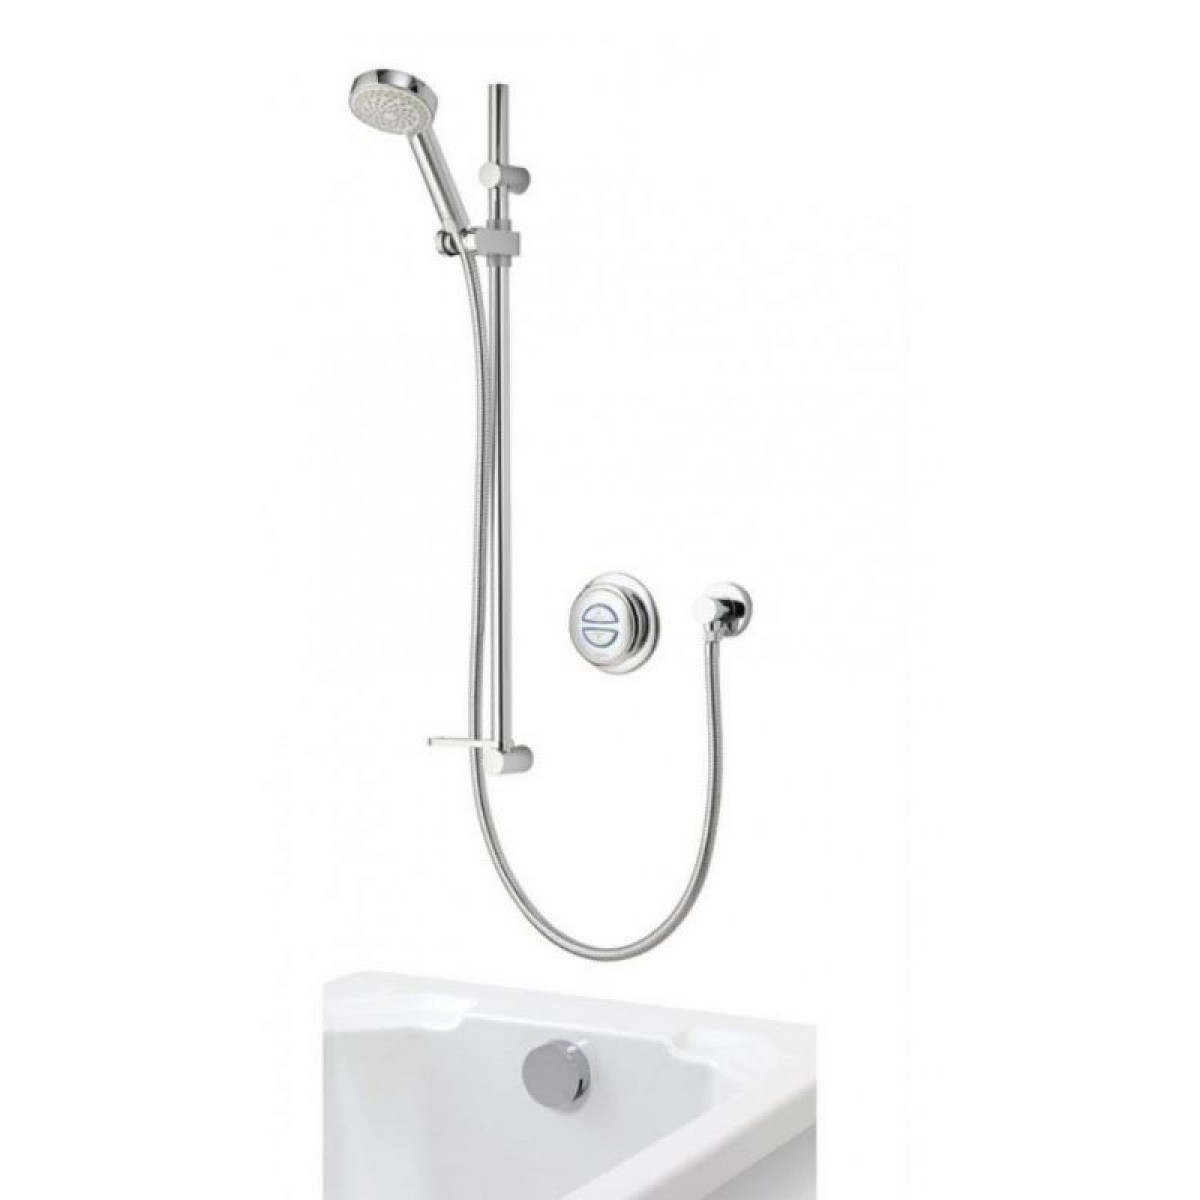 High Pressure Shower Head For Low Water Pressure